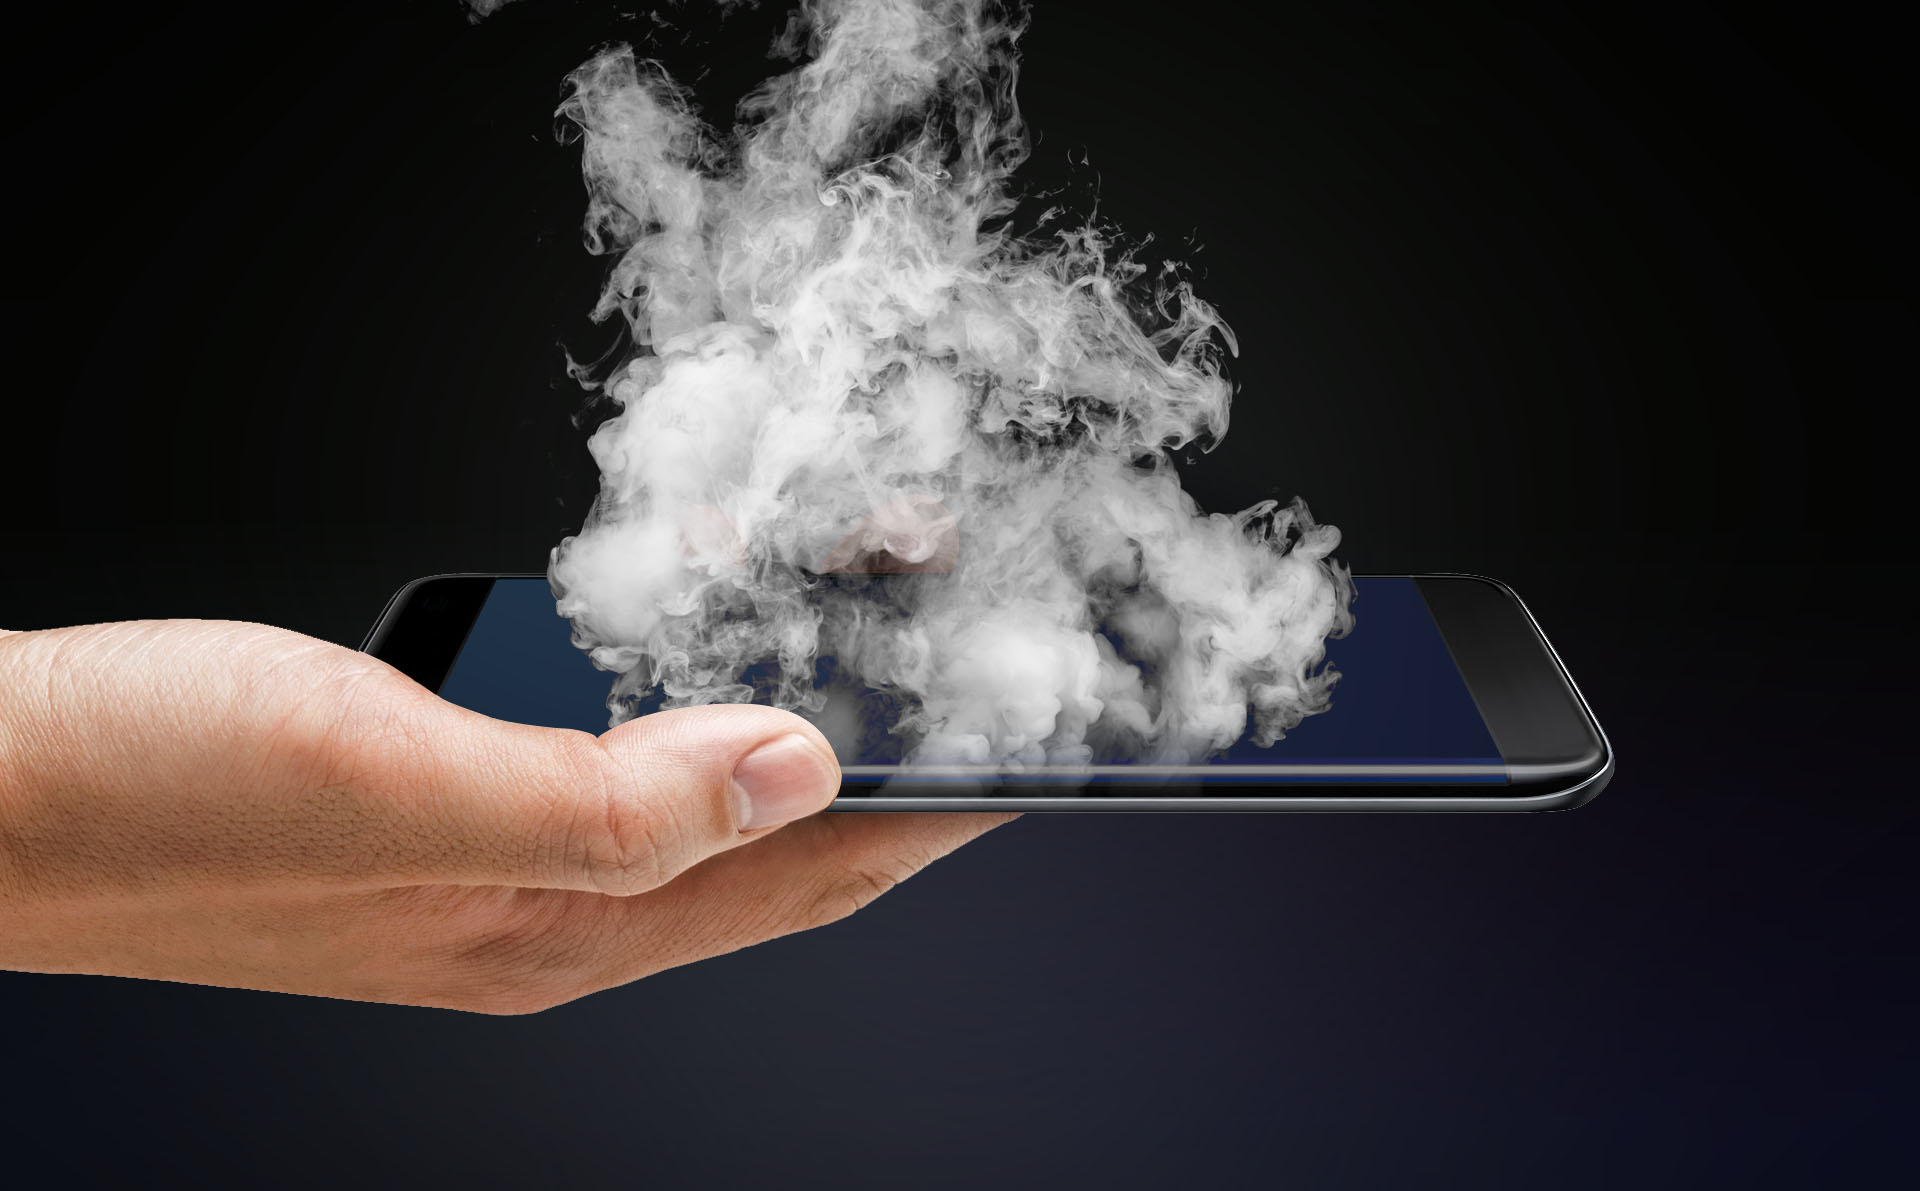 10 Ways To Stop an iPhone from Overheating